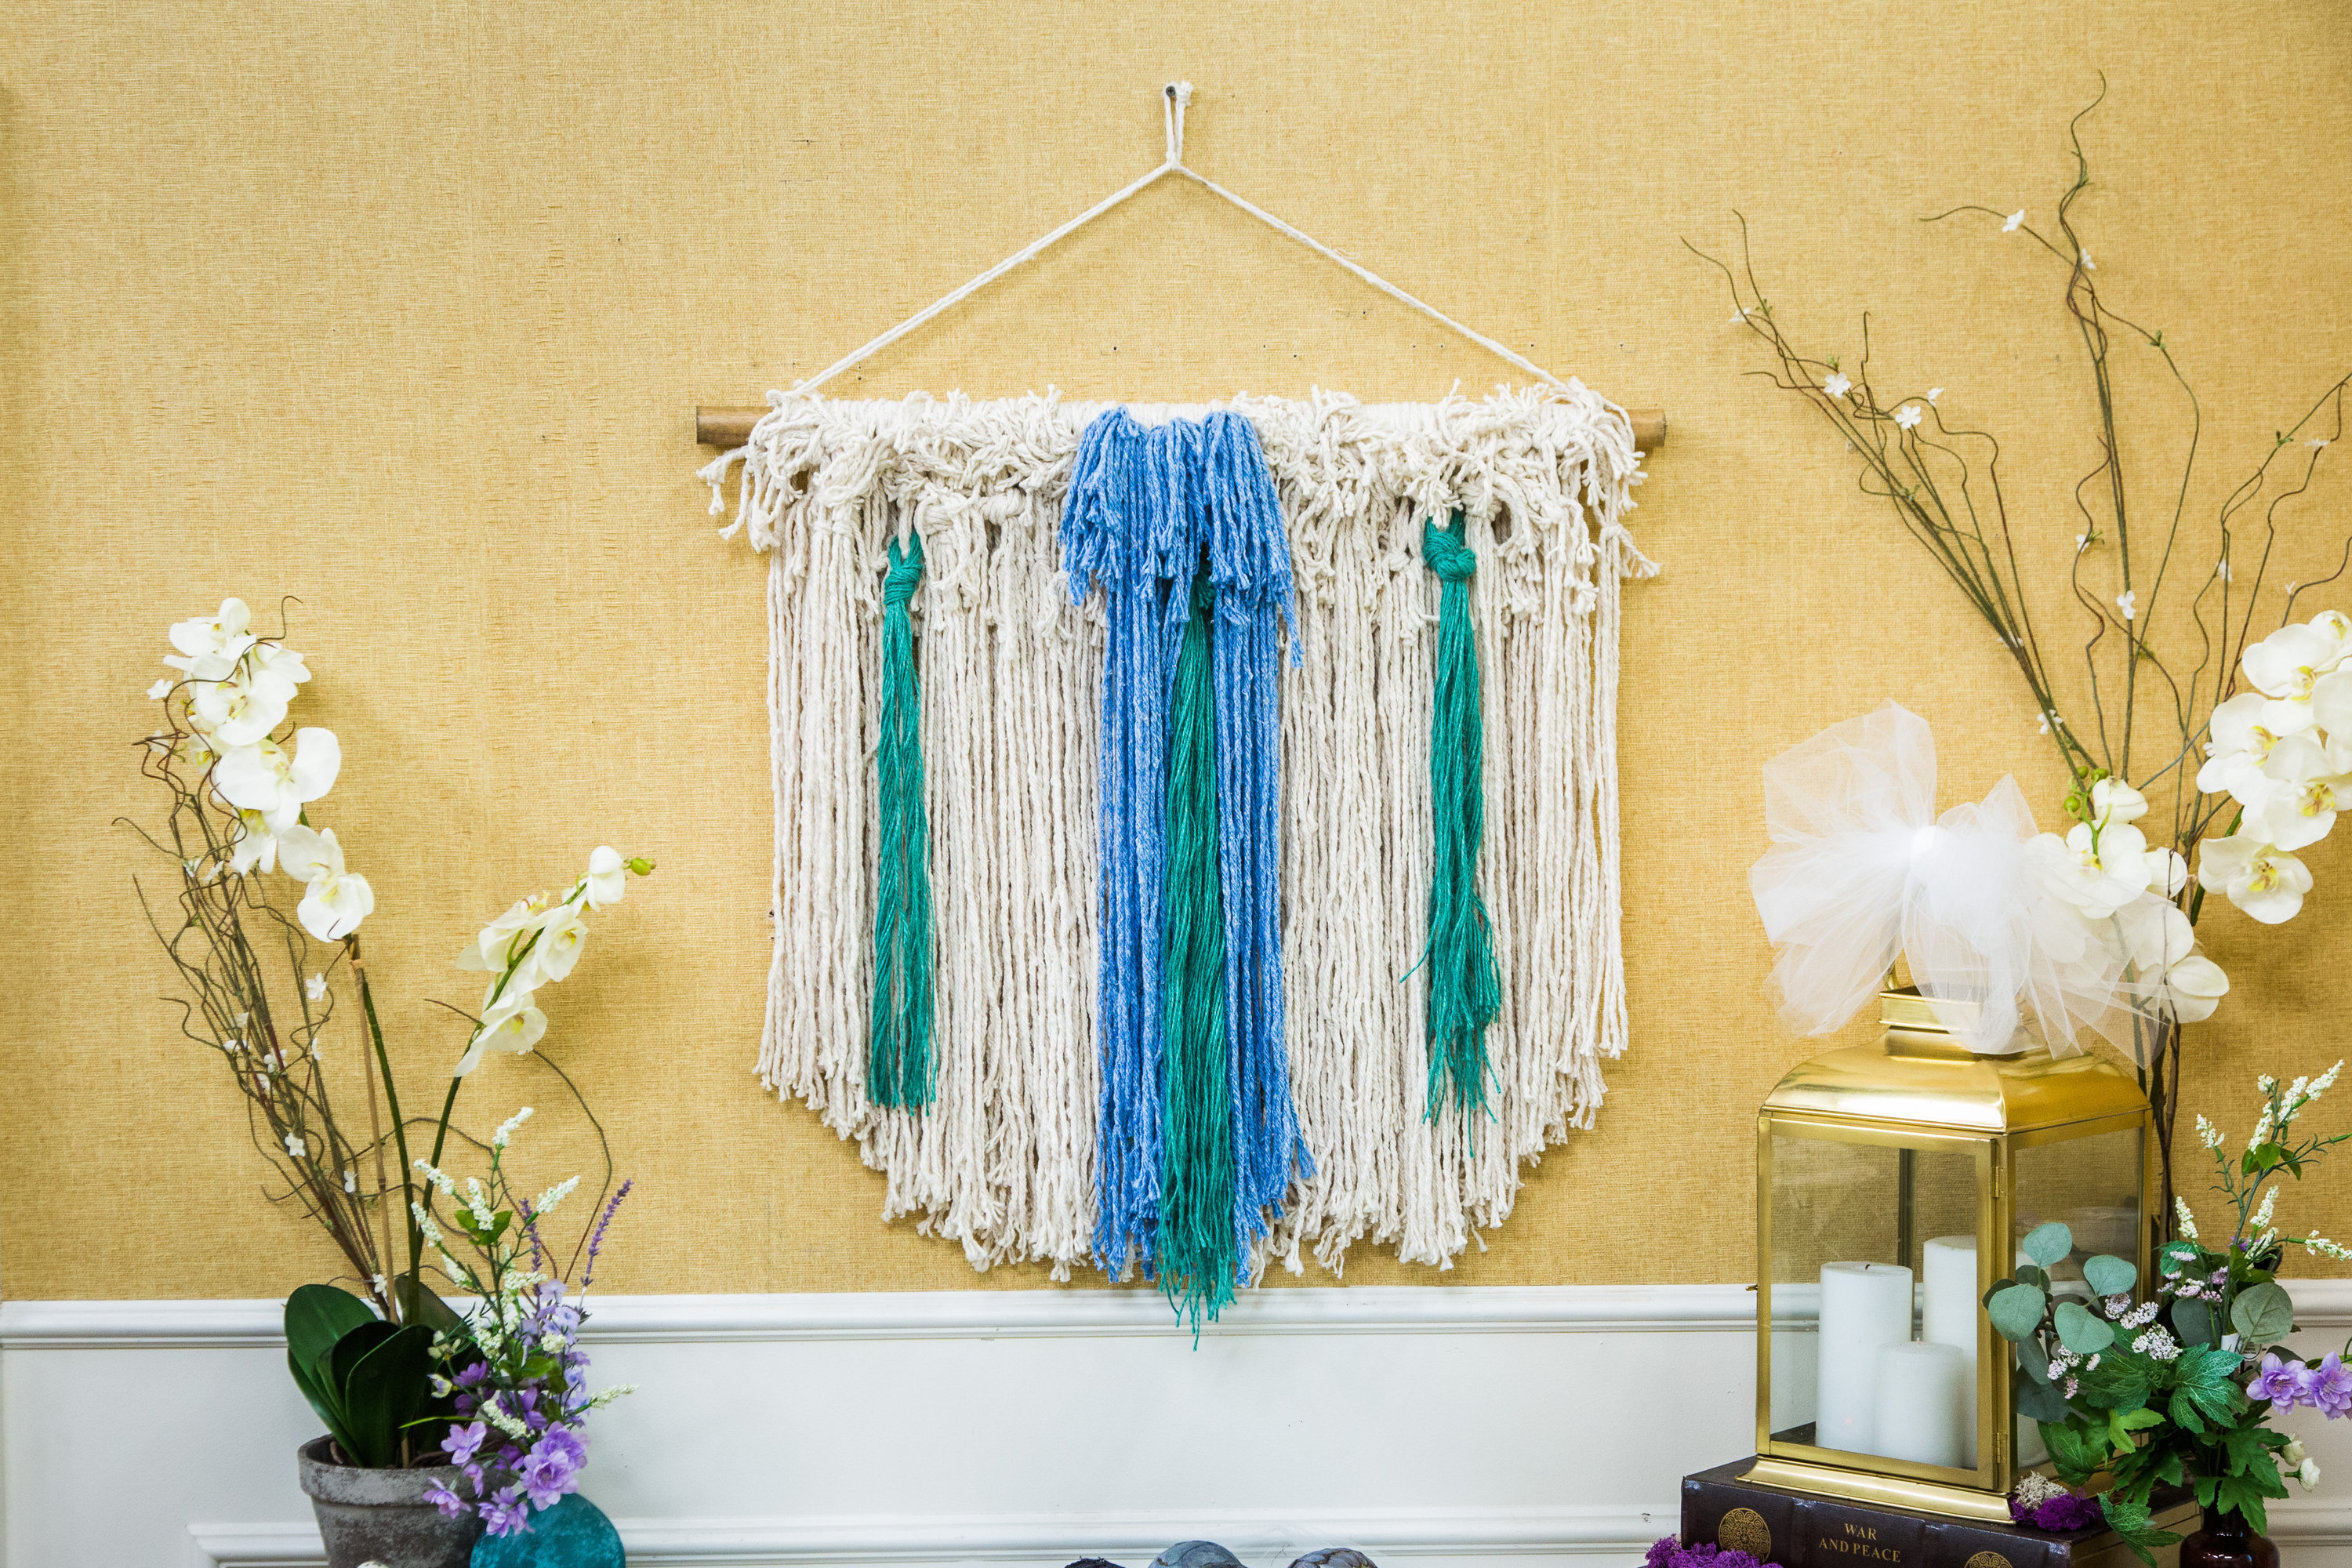 How To - DIY Woven Wall Art   Hallmark Channel